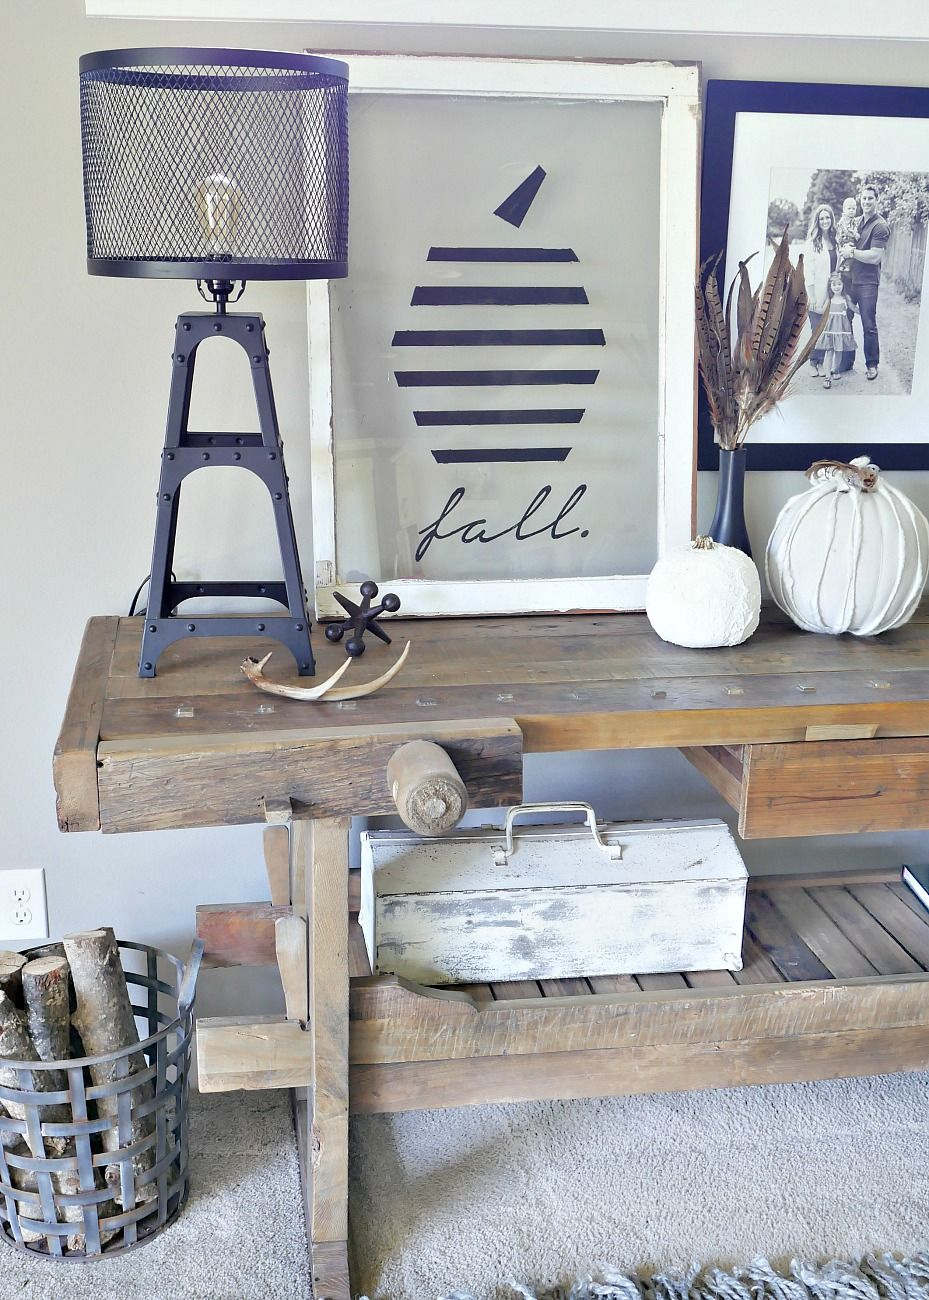 Diy old window decor  modern fall sign  take an old window and use glass paint to create